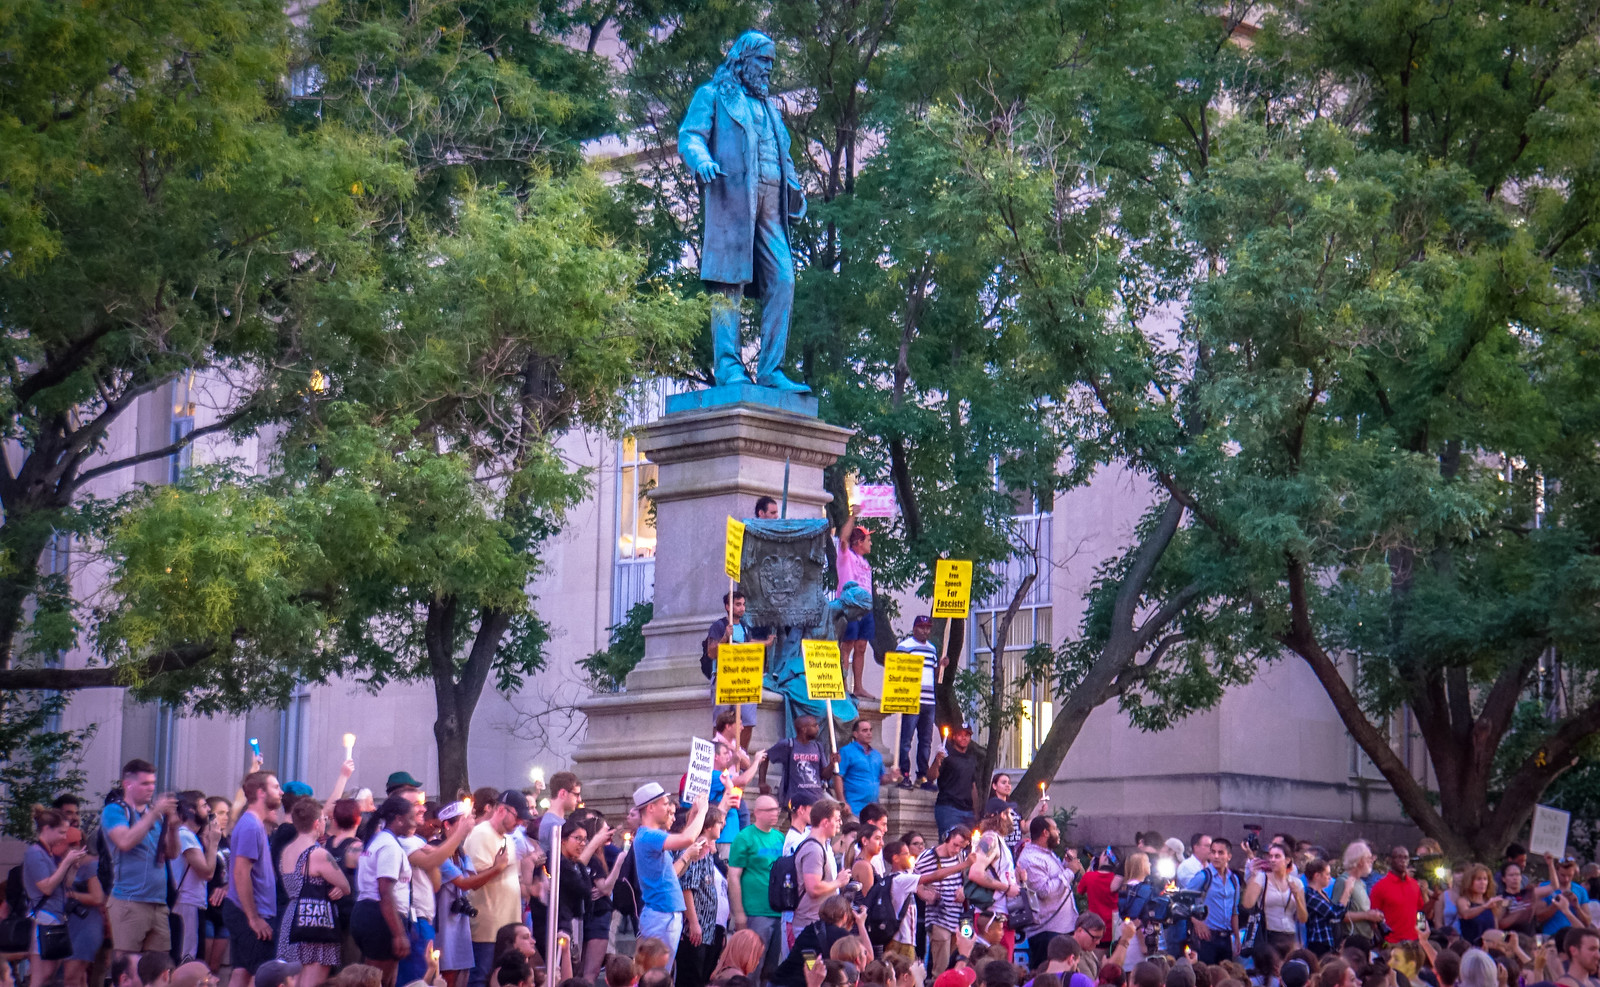 Thanks for publishing my photo @DCist in Mayor, D.C. Councilmembers Want Statue Of Confederate General On Federal Land Removed